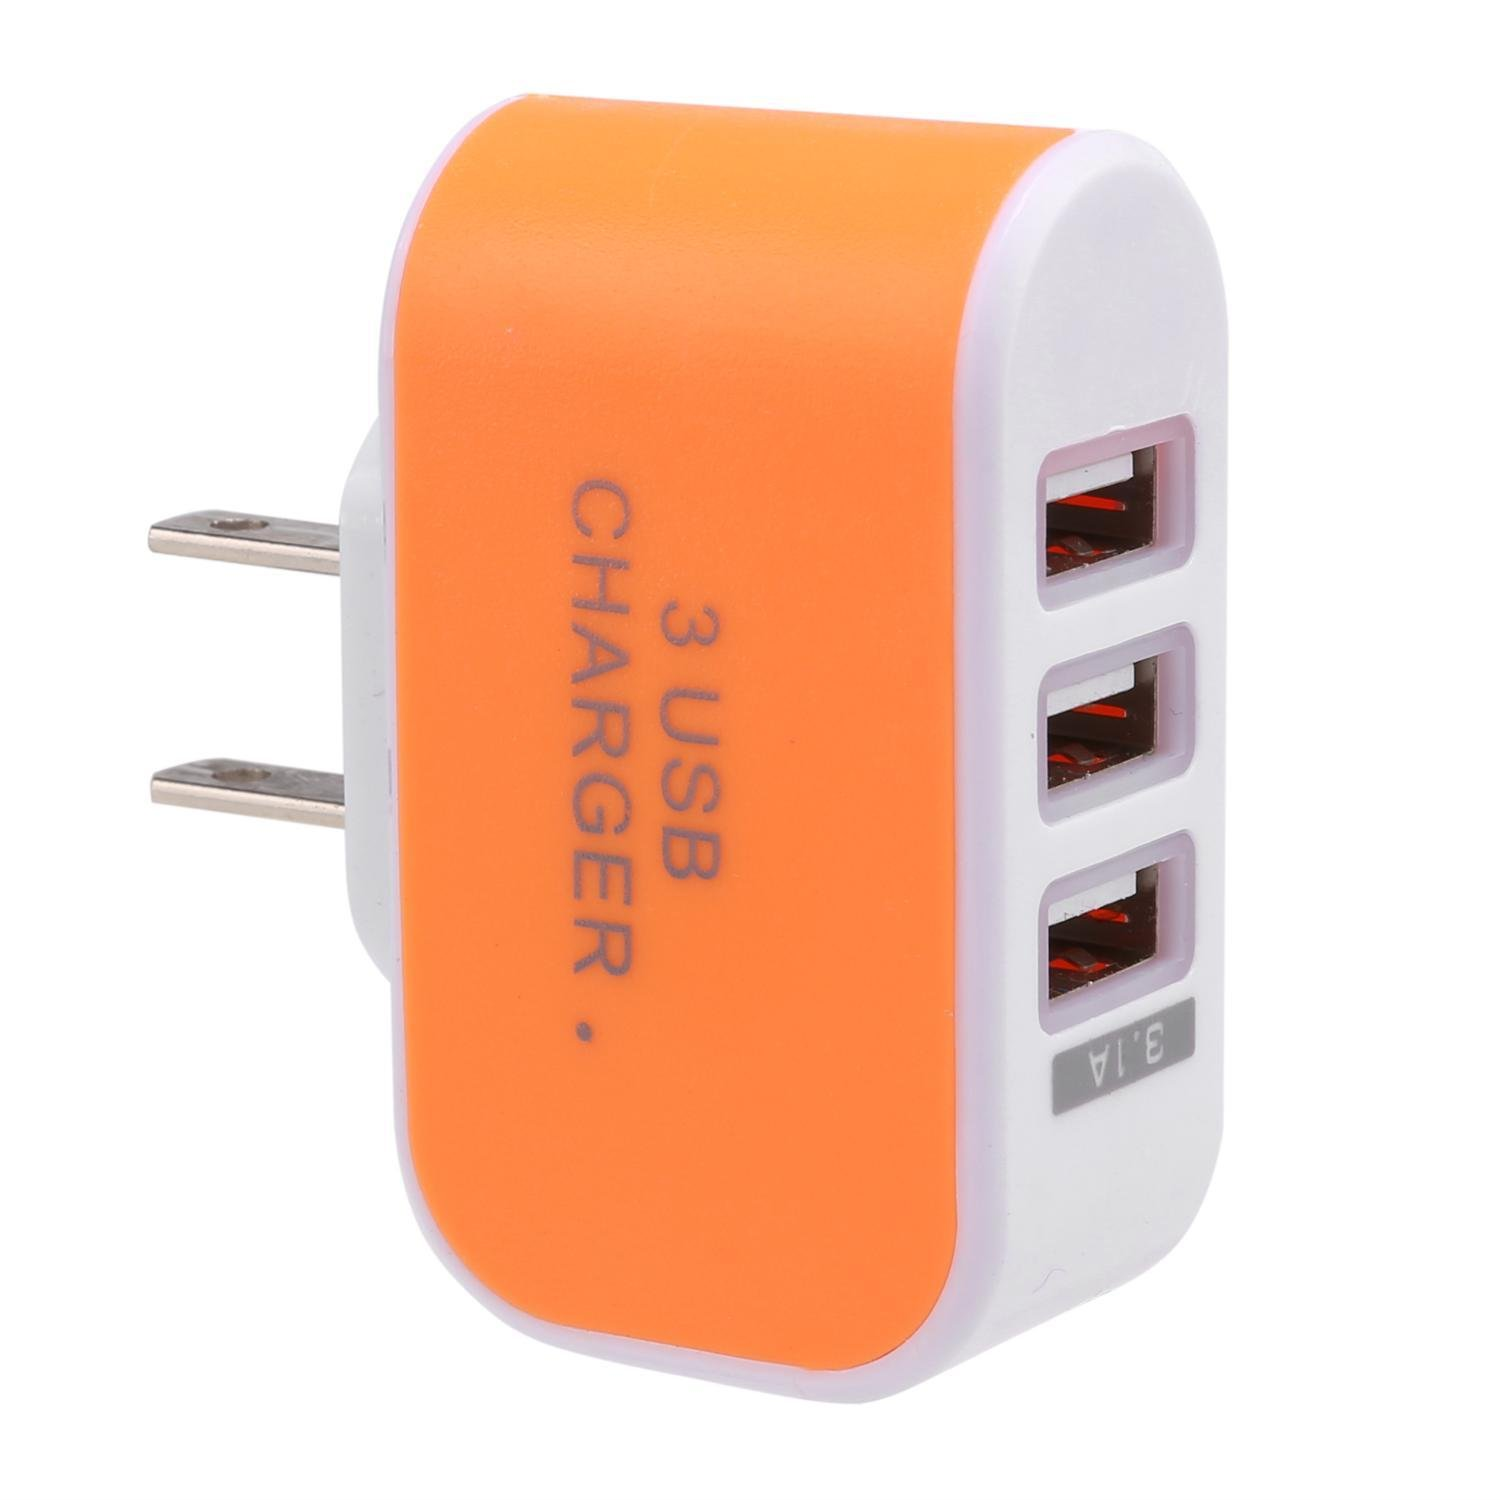 Tiowea New 3-Port USB Wall Home Travel AC Charger Adapter for Phone US Plug Wall Chargers by Tiowea (Image #3)